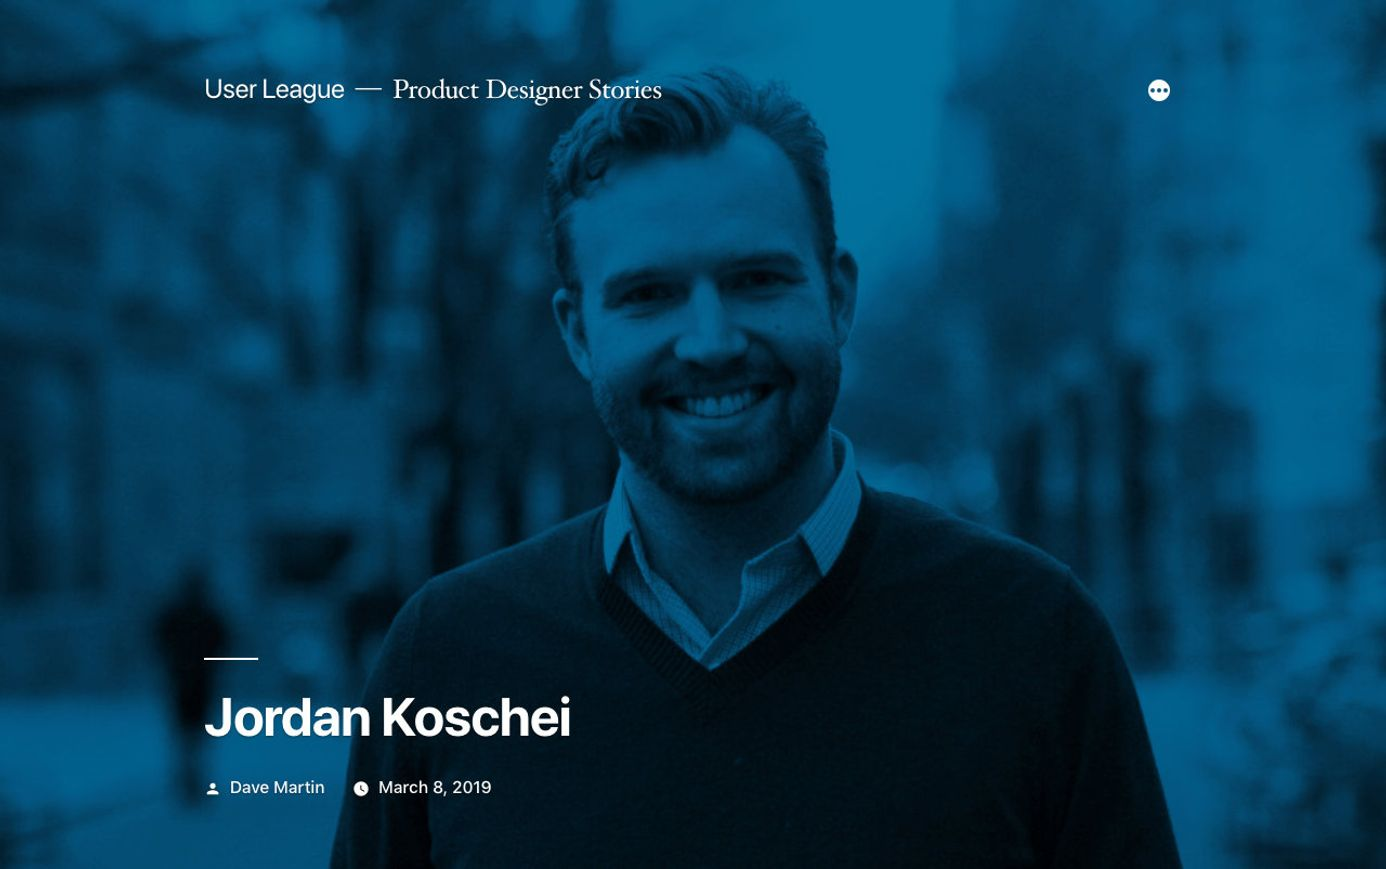 Jordan Koschei on User League